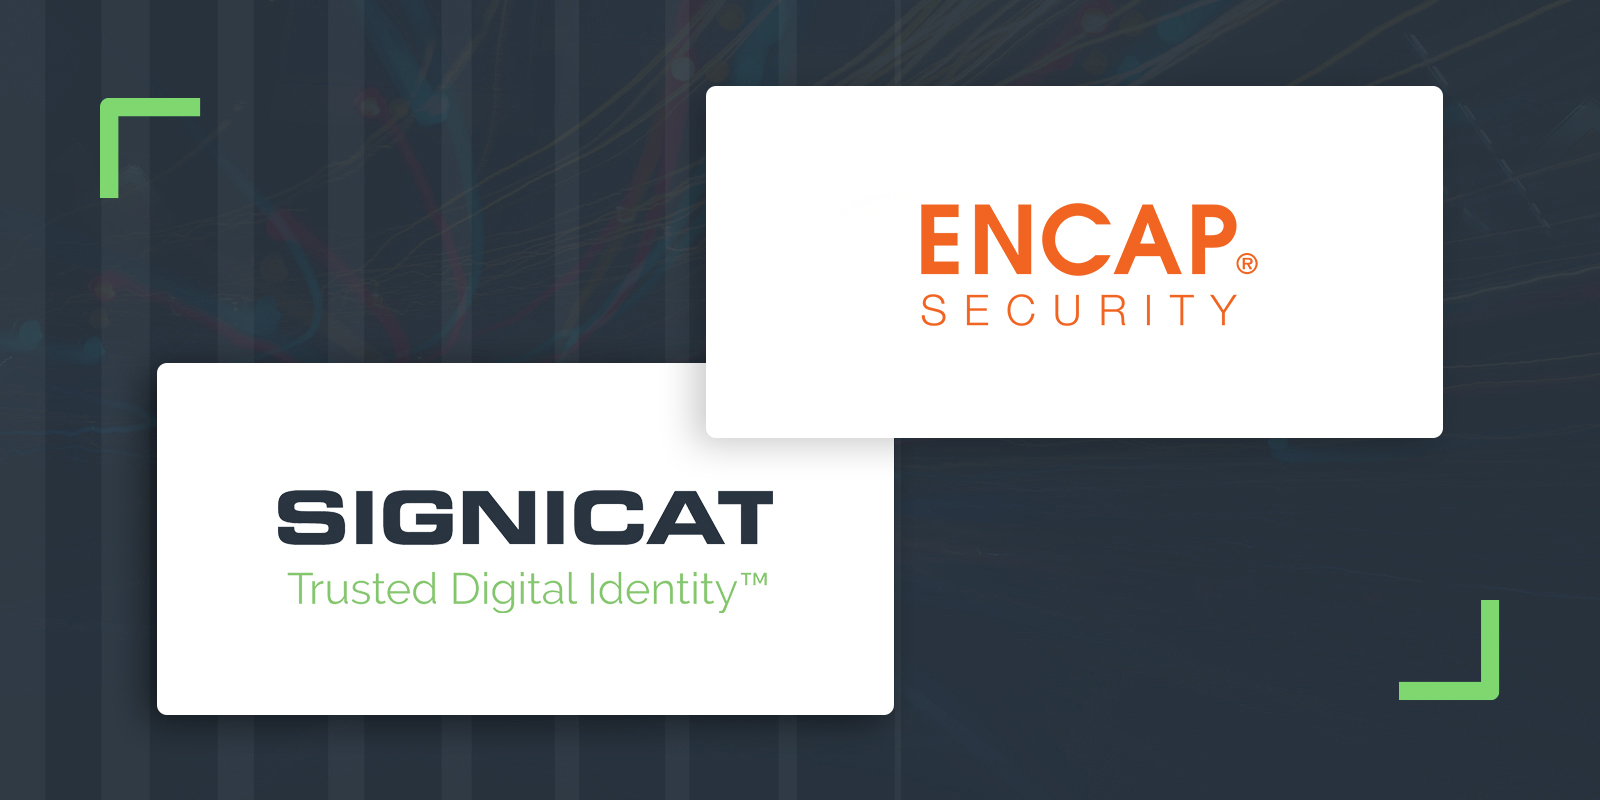 Joint logos web banner Encap security and Signicat logo30 - Signicat acquires Encap Security